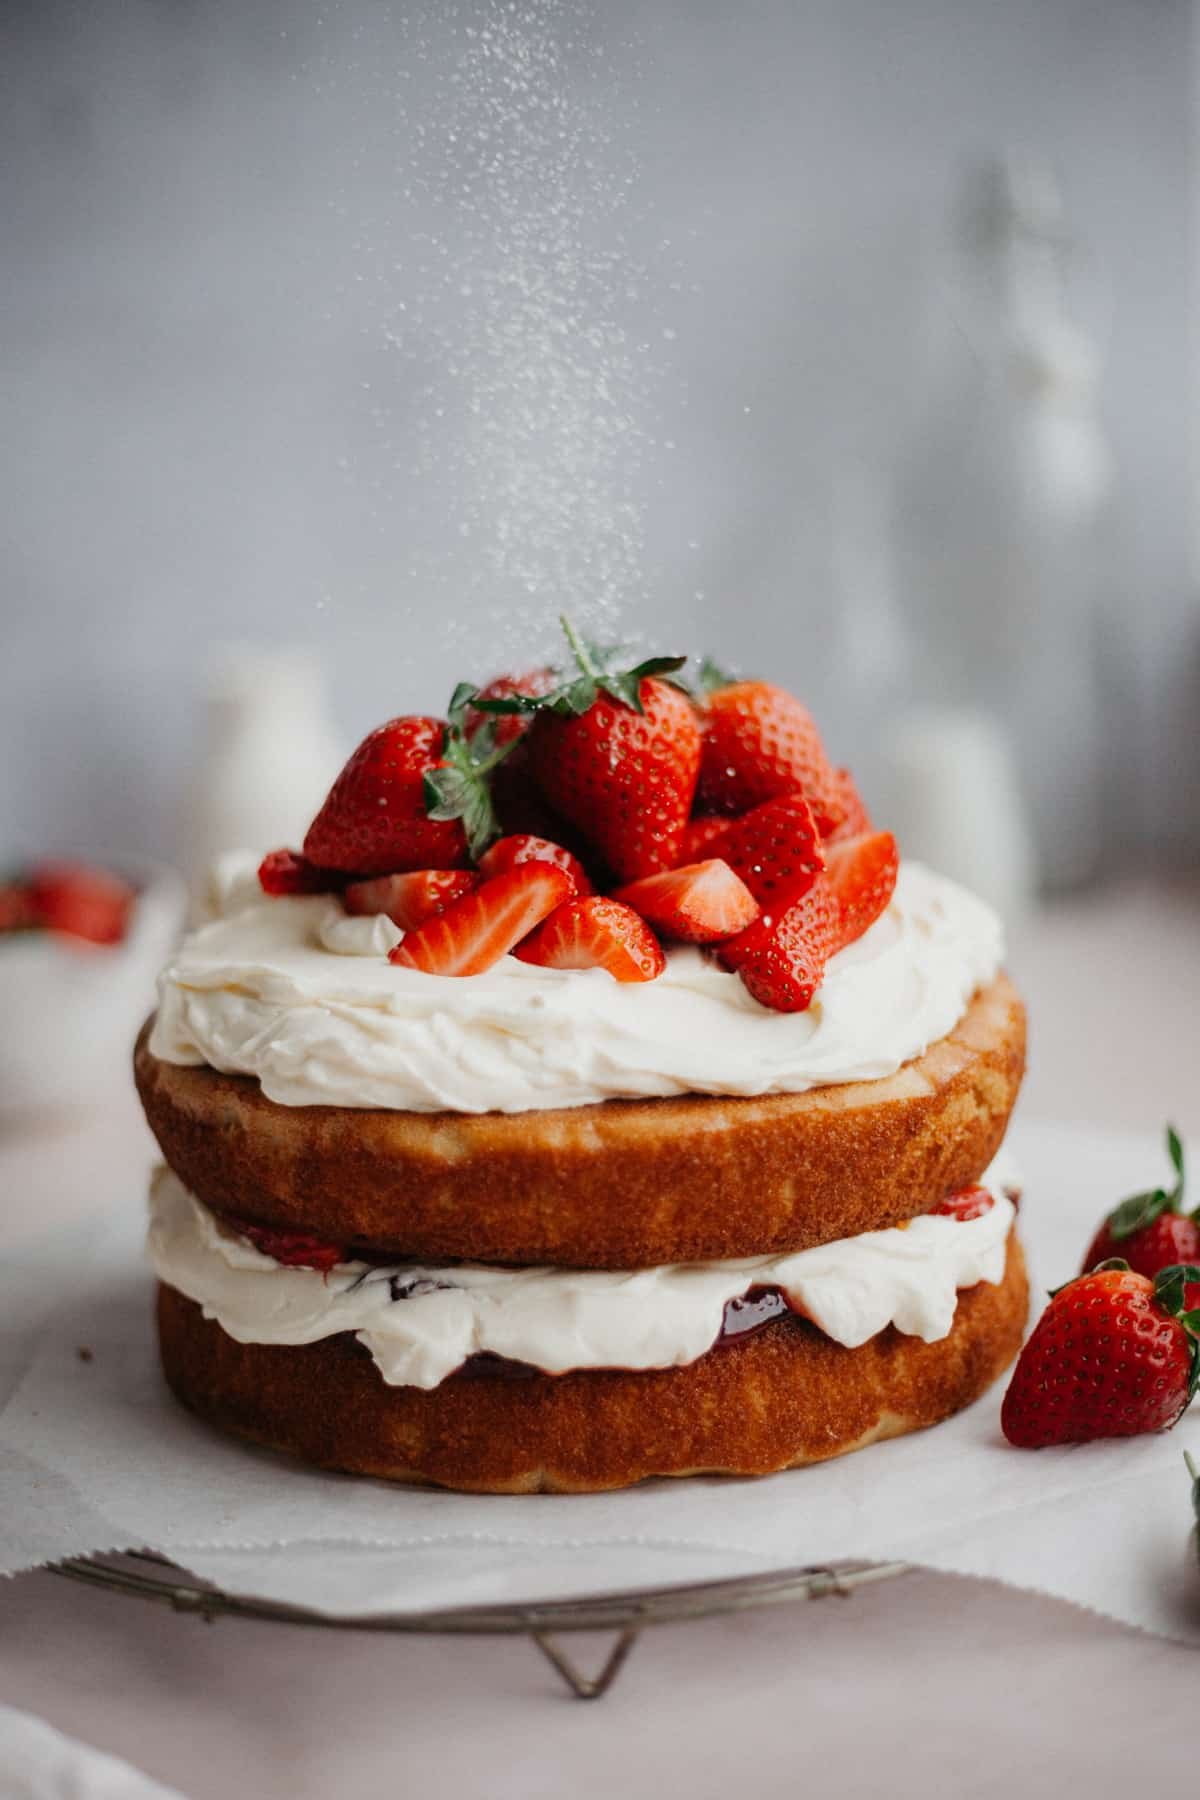 A naked cake, with a whipped cream filling and topping, topped with strawberries. There is a light shower of powdered sugar coming down.